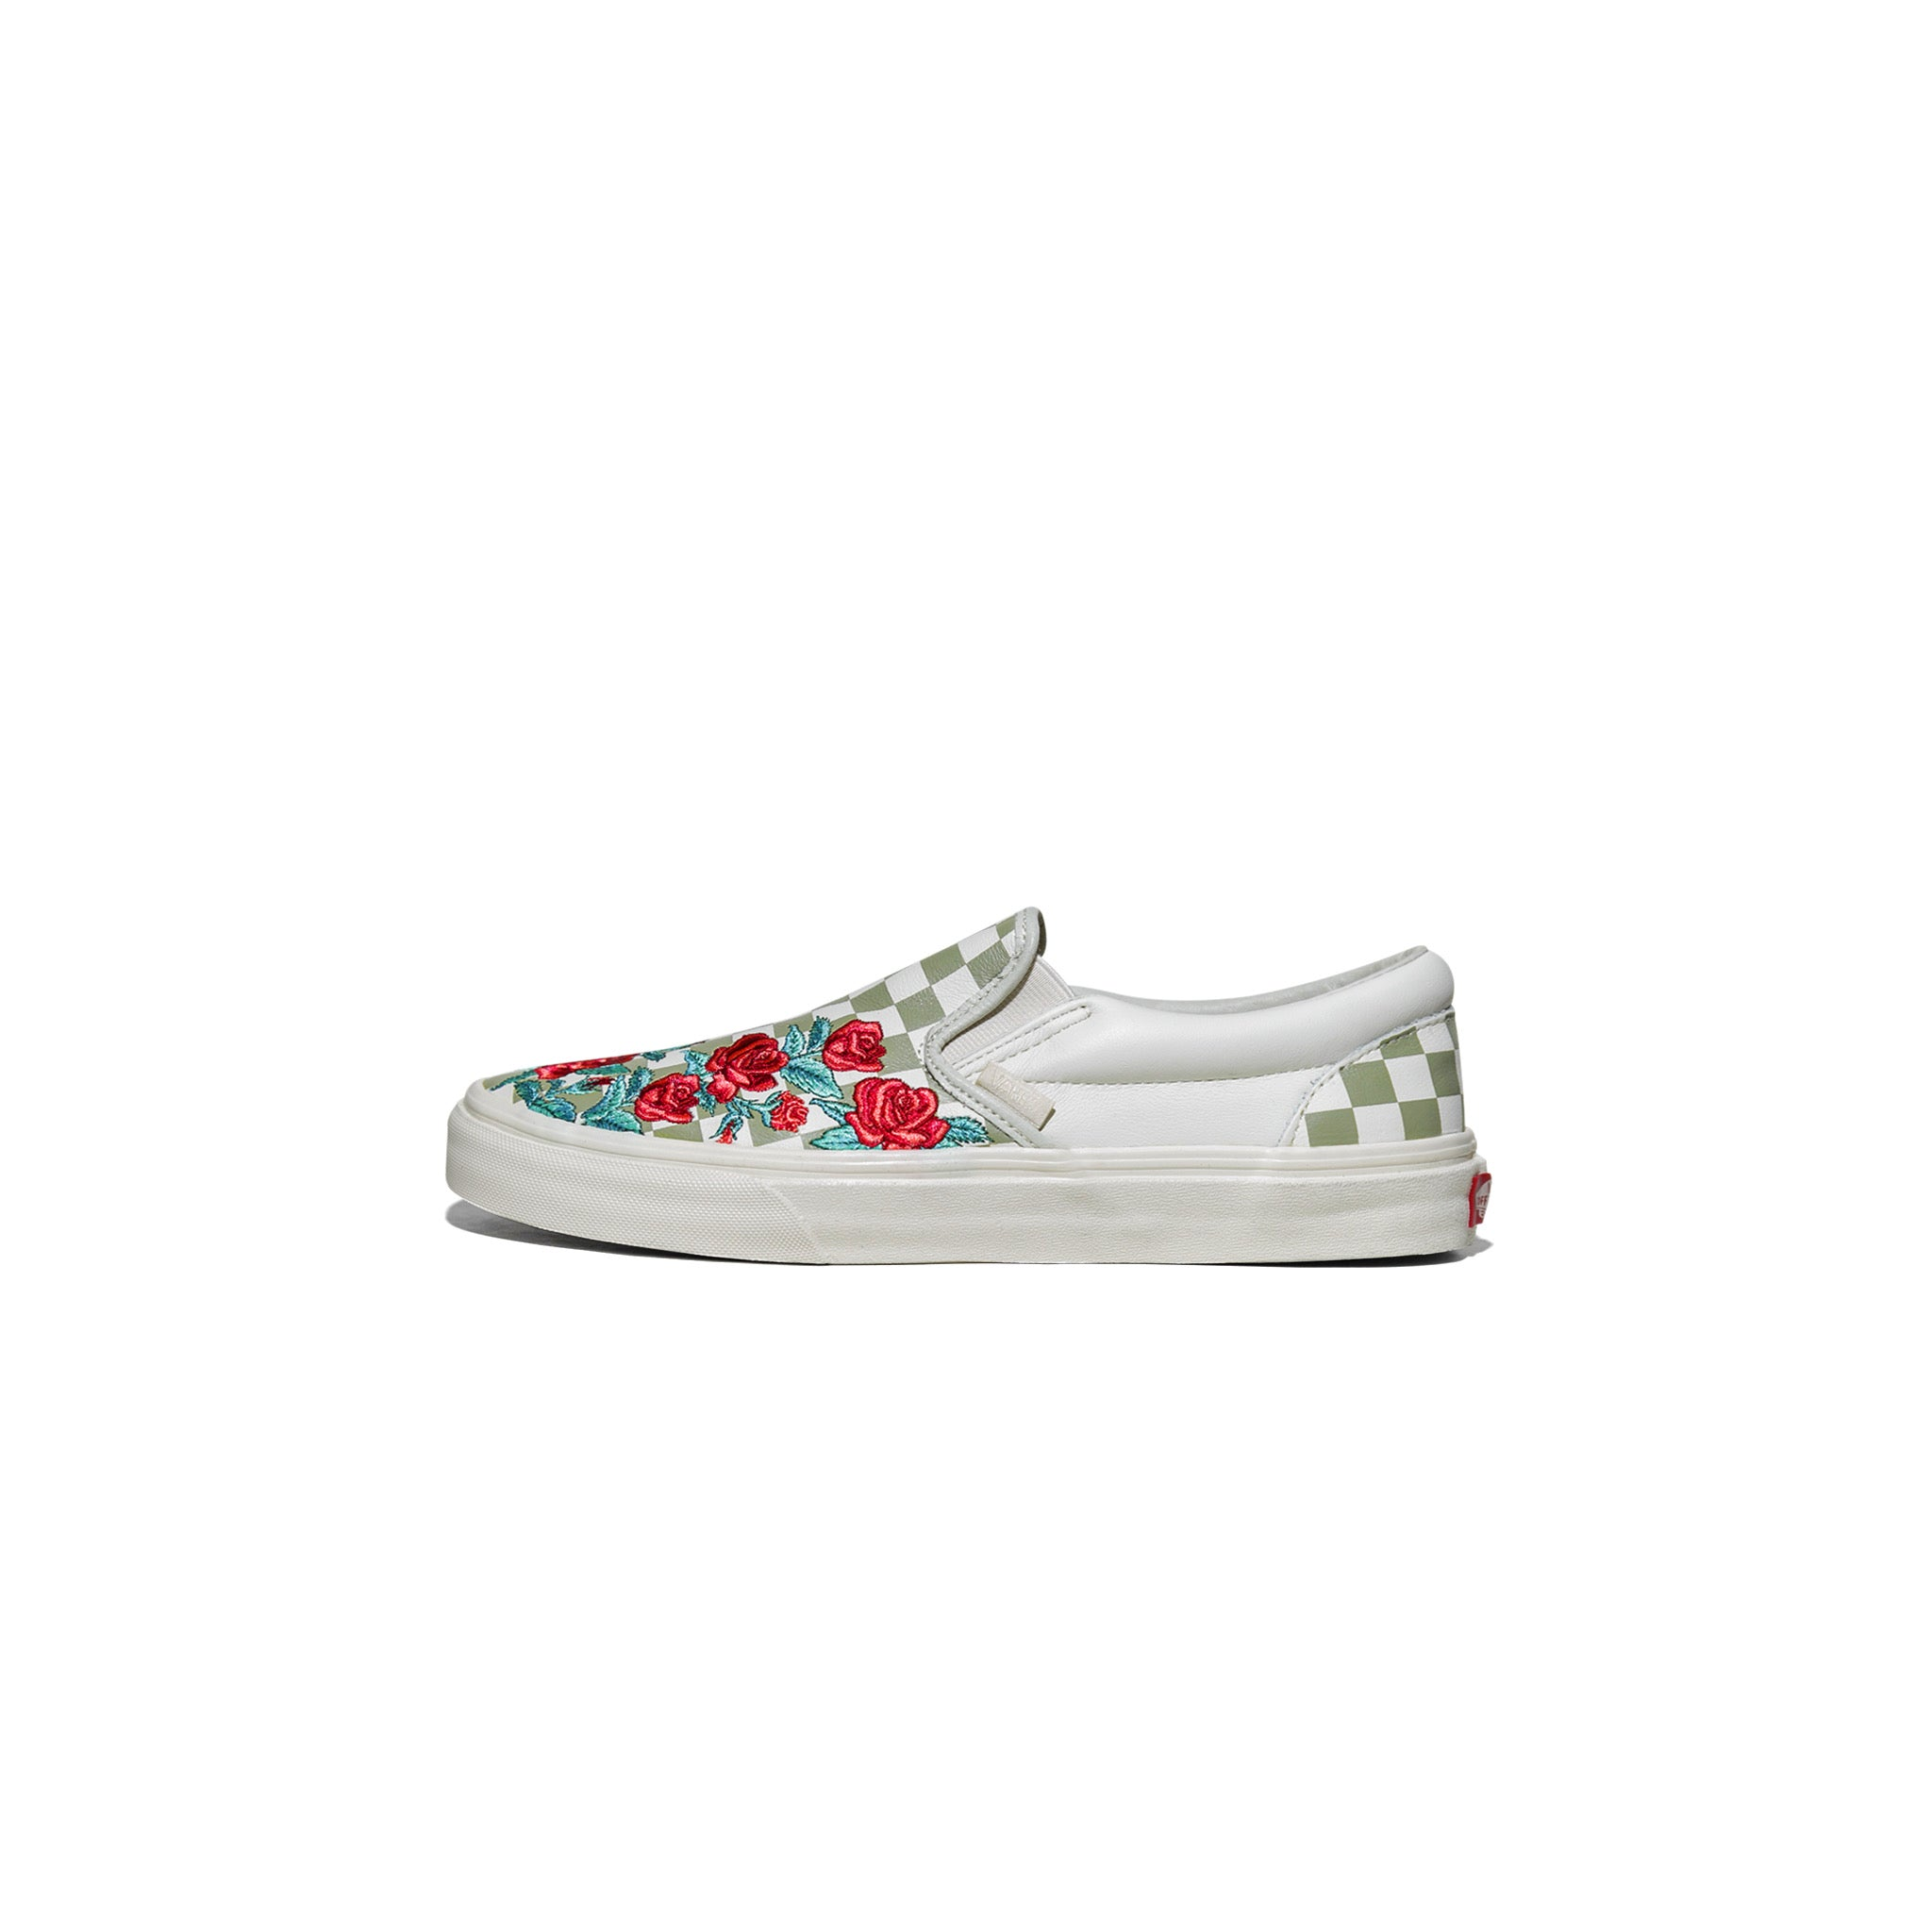 CLASSIC SLIP-ON DX - ROSE EMBROIDERY